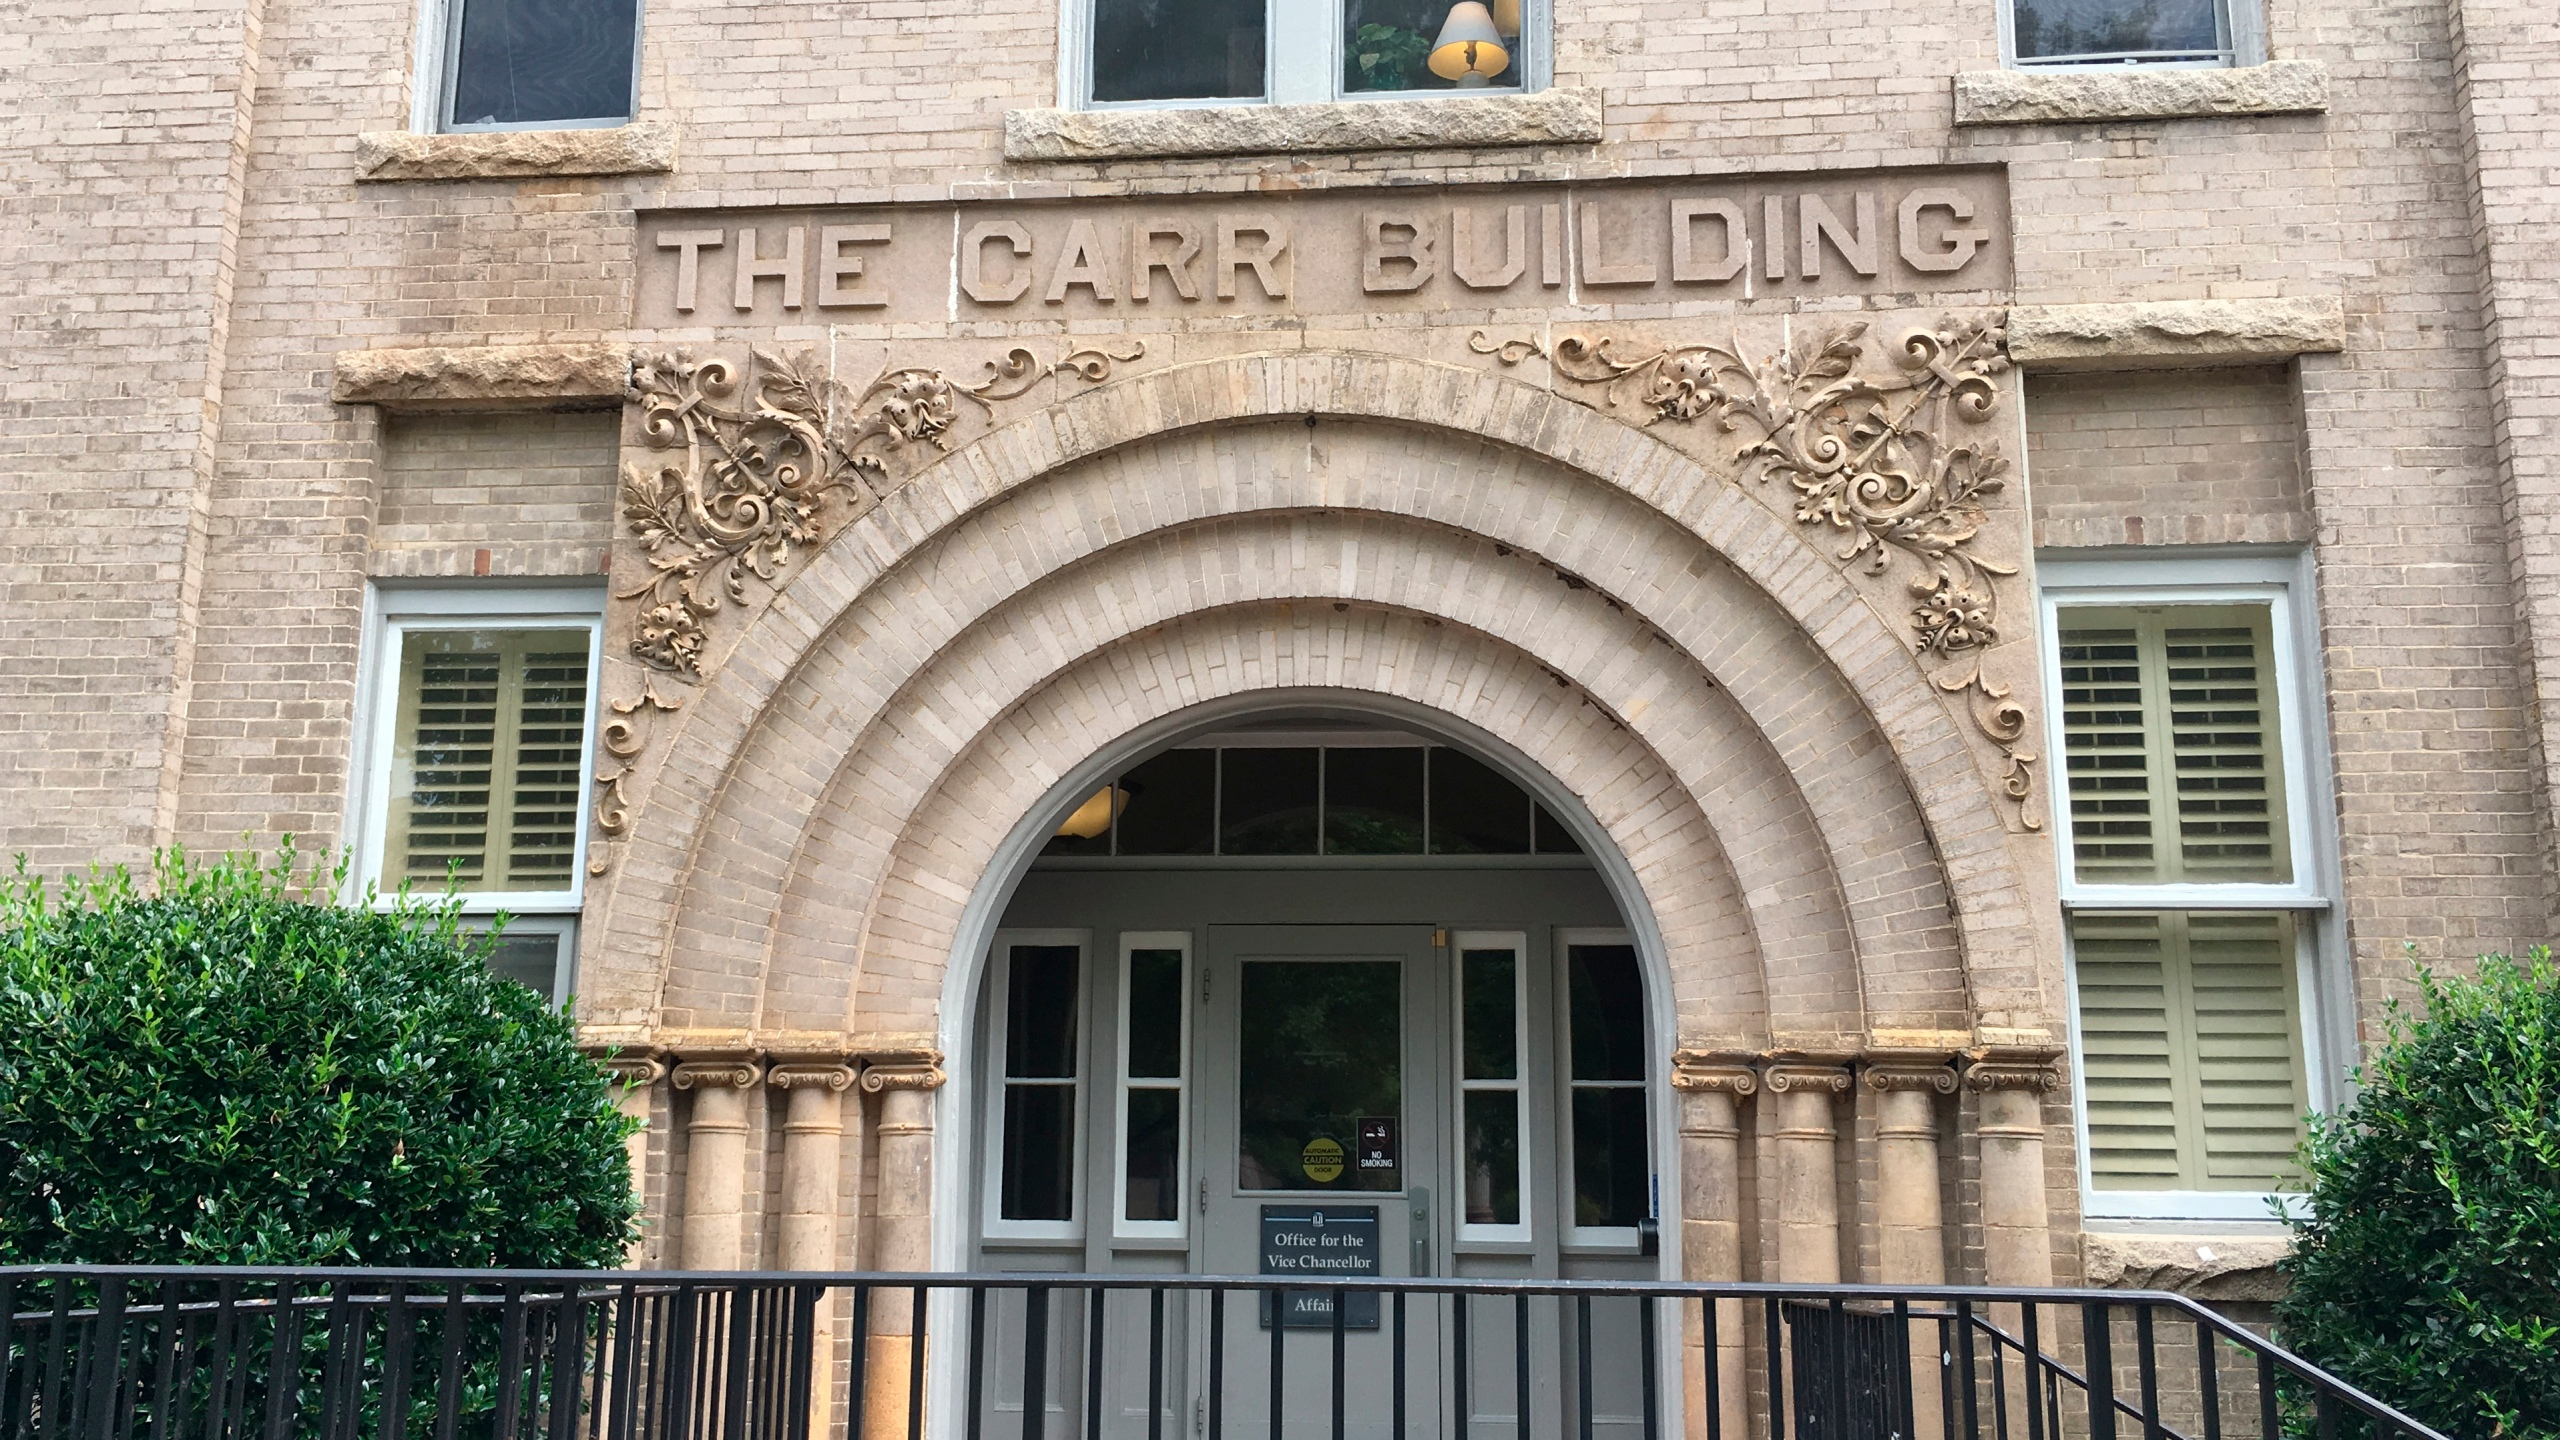 This Aug. 31, 2017 photo shows an entrance to the Carr Building on the campus of the University of North Carolina in Chapel Hill, N.C. The University of North Carolina-Chapel Hill Board of Trustees voted on Wednesday, July 29, 2020, to remove the names of Carr and three other men who have ties to white supremacy and racism from campus buildings. (AP Photo/Jonathan Drew)